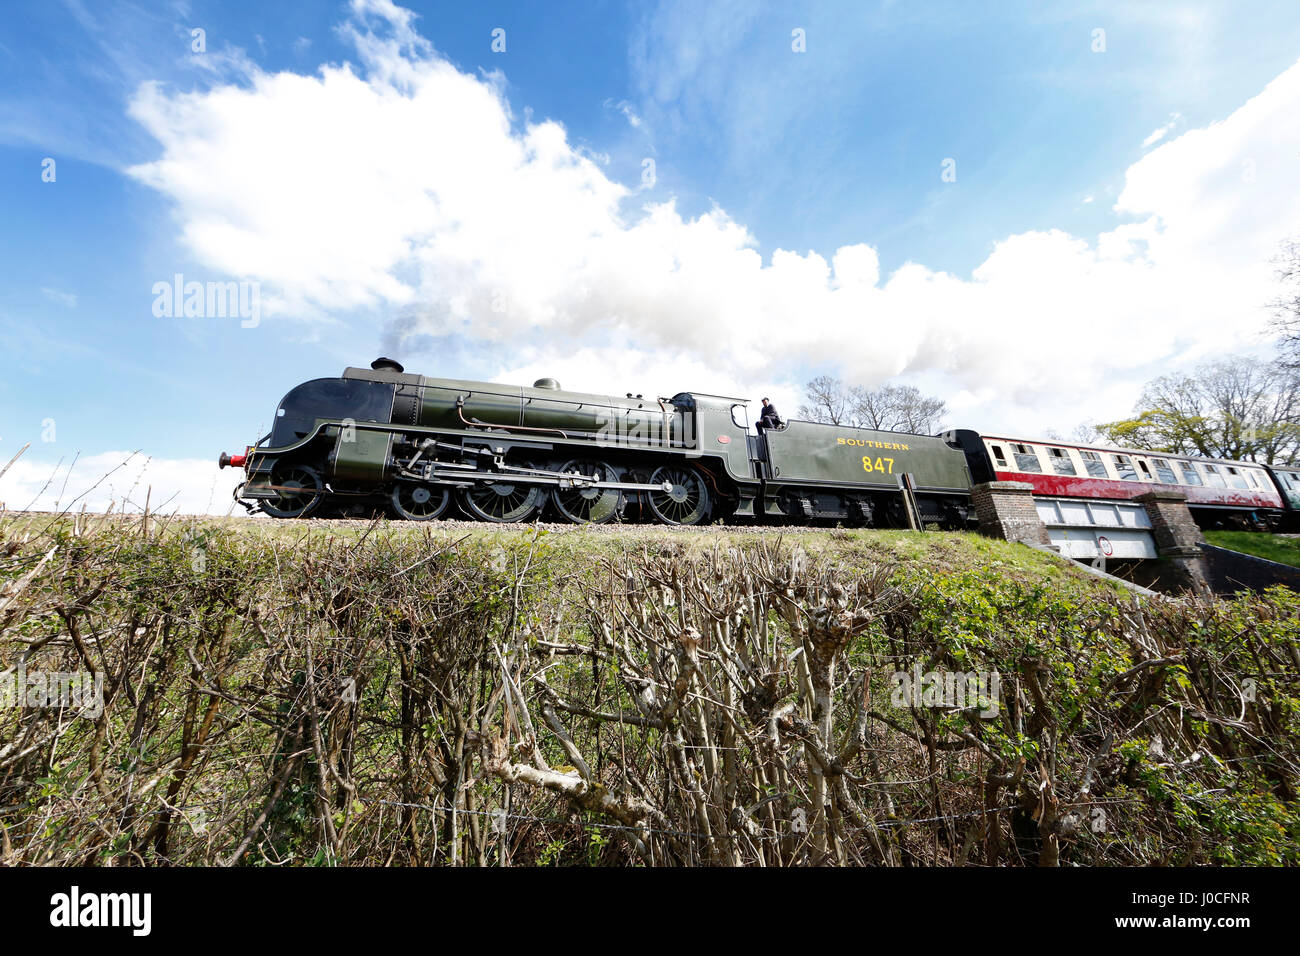 Southern Railway Maunsell S15-class 4-6-0 No.847 Locomotive travels along the Bluebell Railway. - Stock Image